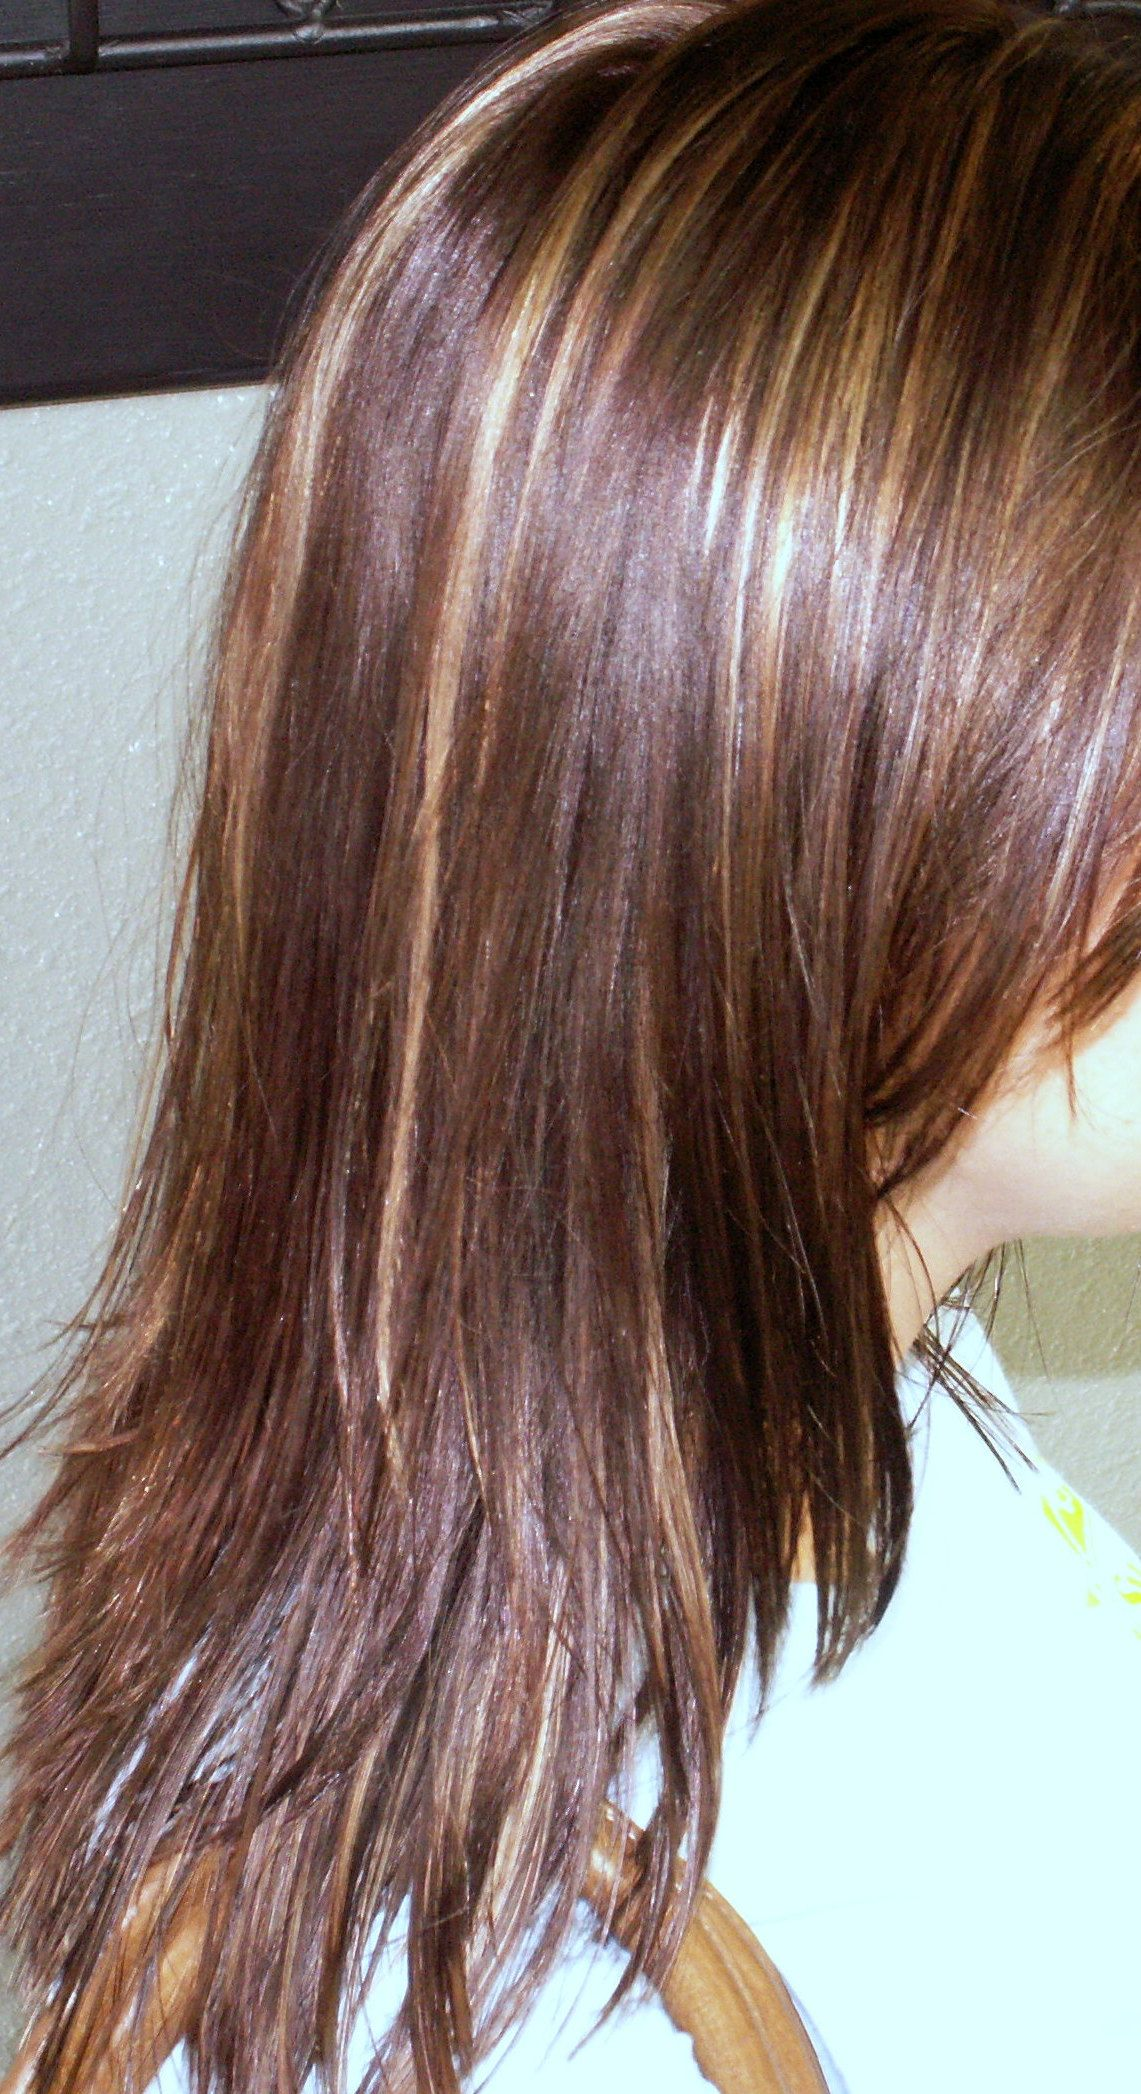 Heavily Highlighted Hair Was Weaved Applying Conditioner To All Hair